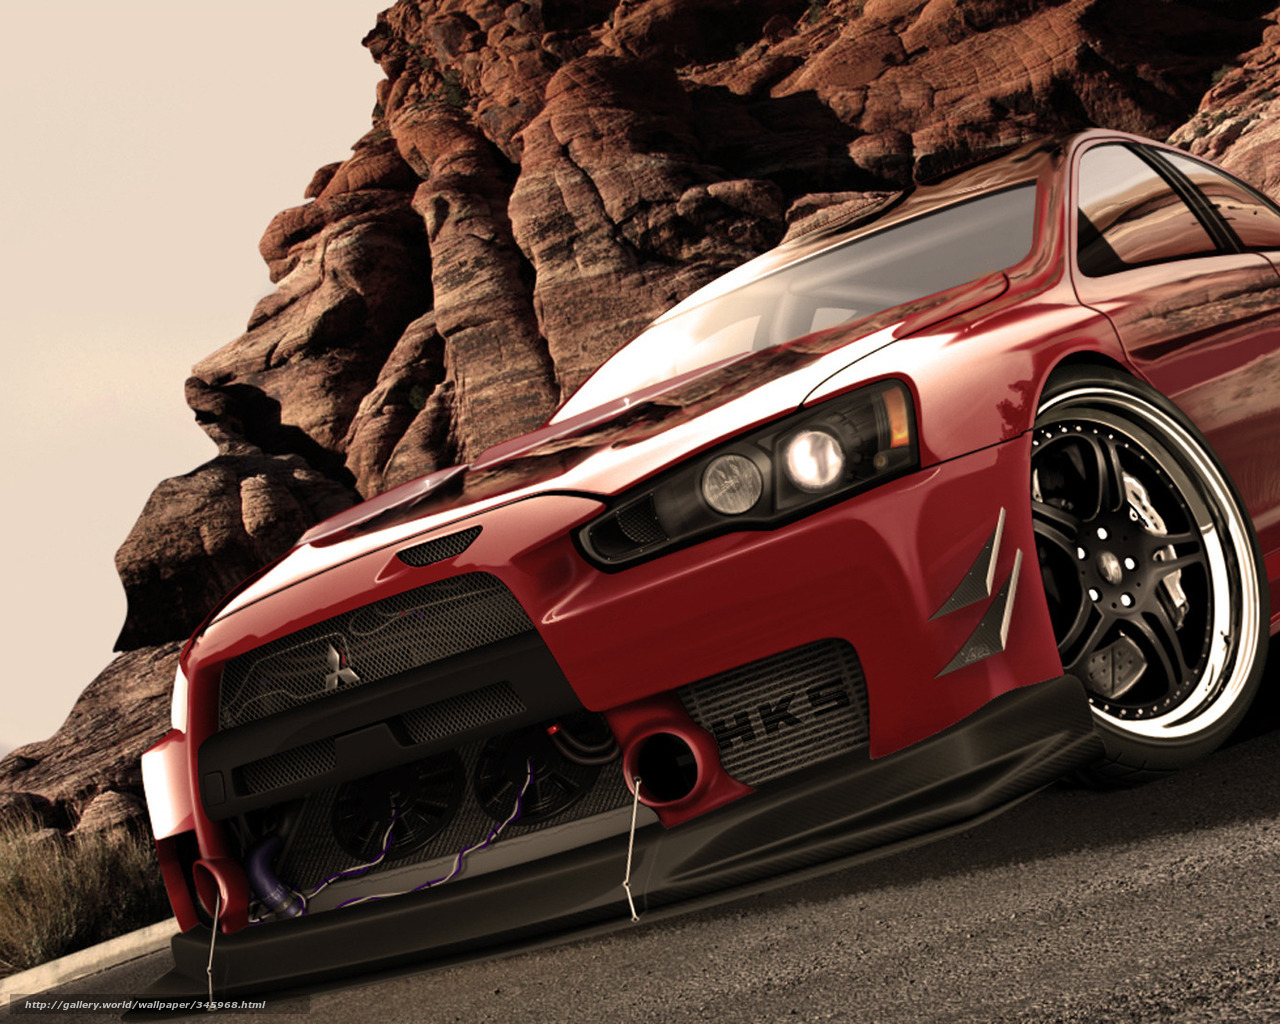 Mitsubisi Lancer Evo >> Download wallpaper Mitsubishi, evo10, lantser, Canyon free desktop wallpaper in the resolution ...